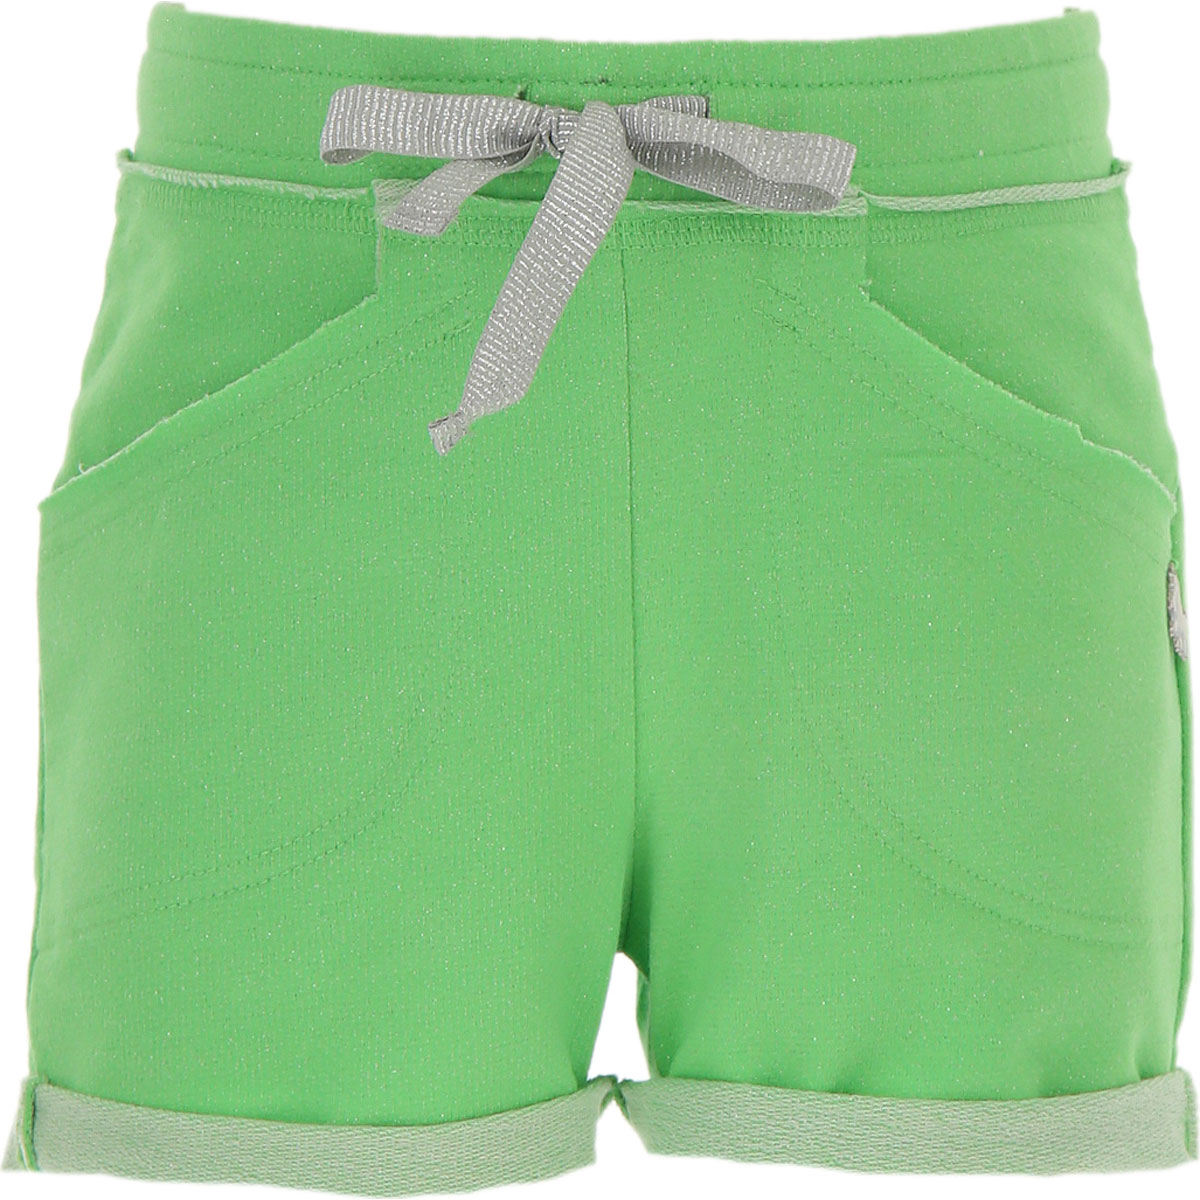 Lu - Lu Kids Shorts for Girls On Sale in Outlet, Green, Cotton, 2019, 10Y 6Y